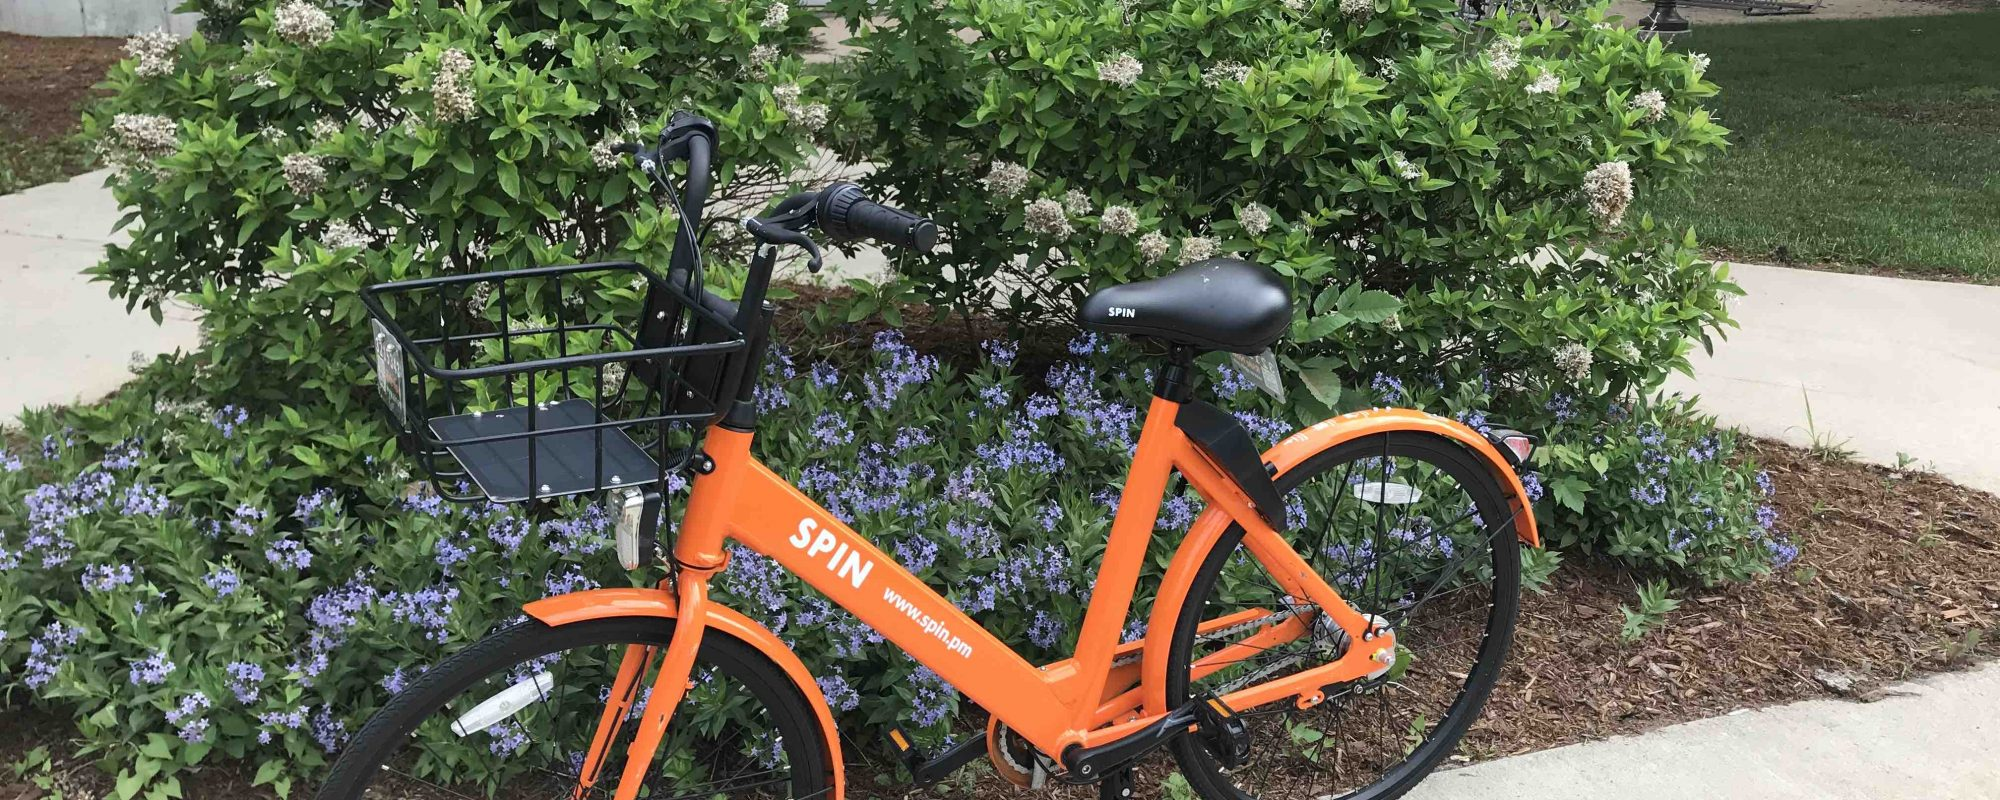 Take Spin bikes for a spin! Nicole Kivela shares a how-to guide for using UW-Stevens Point's bike share option.